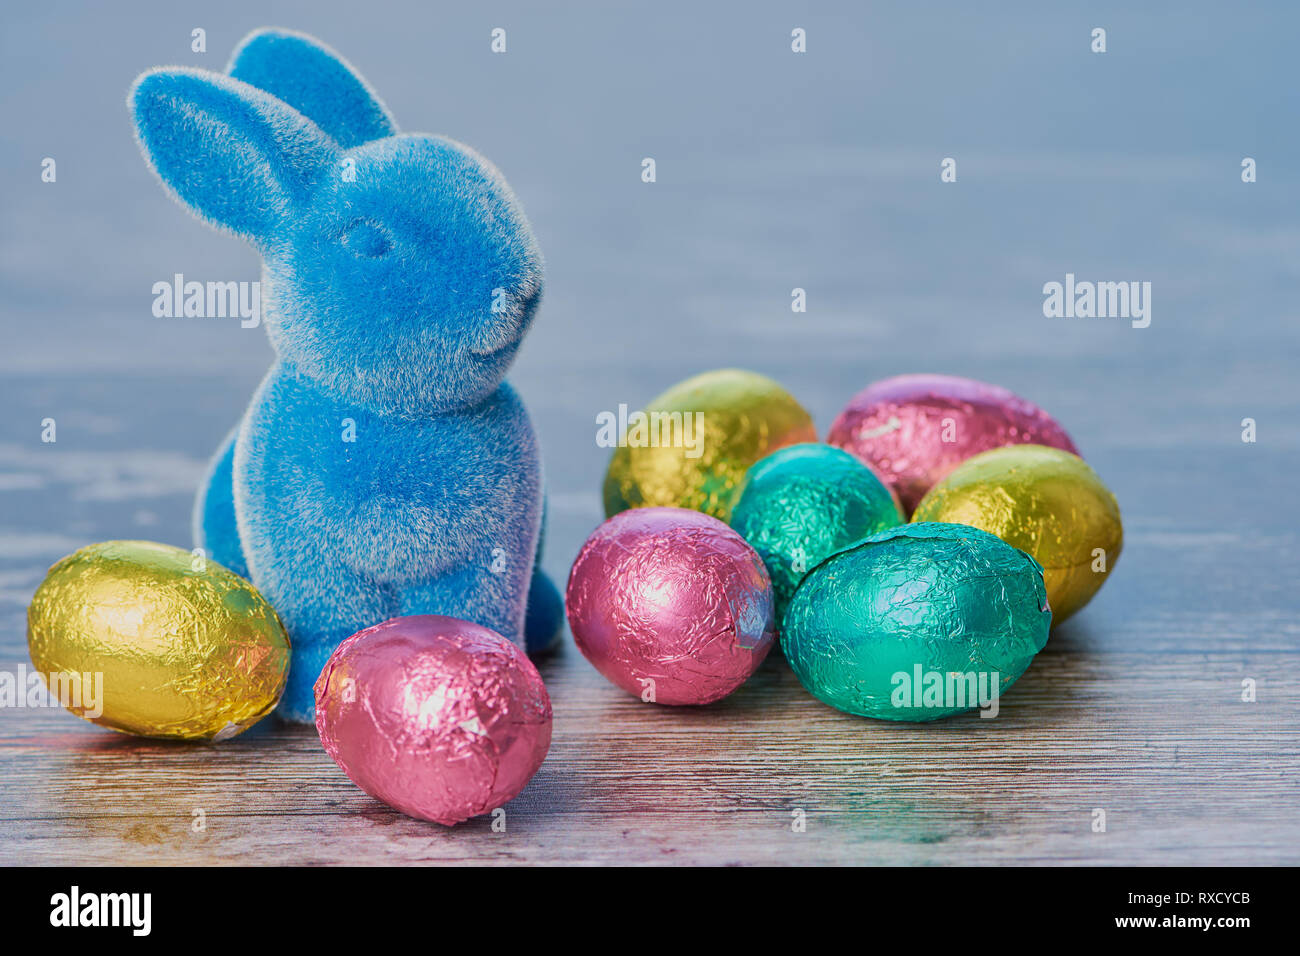 blue easter bunny with wrapped chocolate eggs against white wooden background with copy space Stock Photo